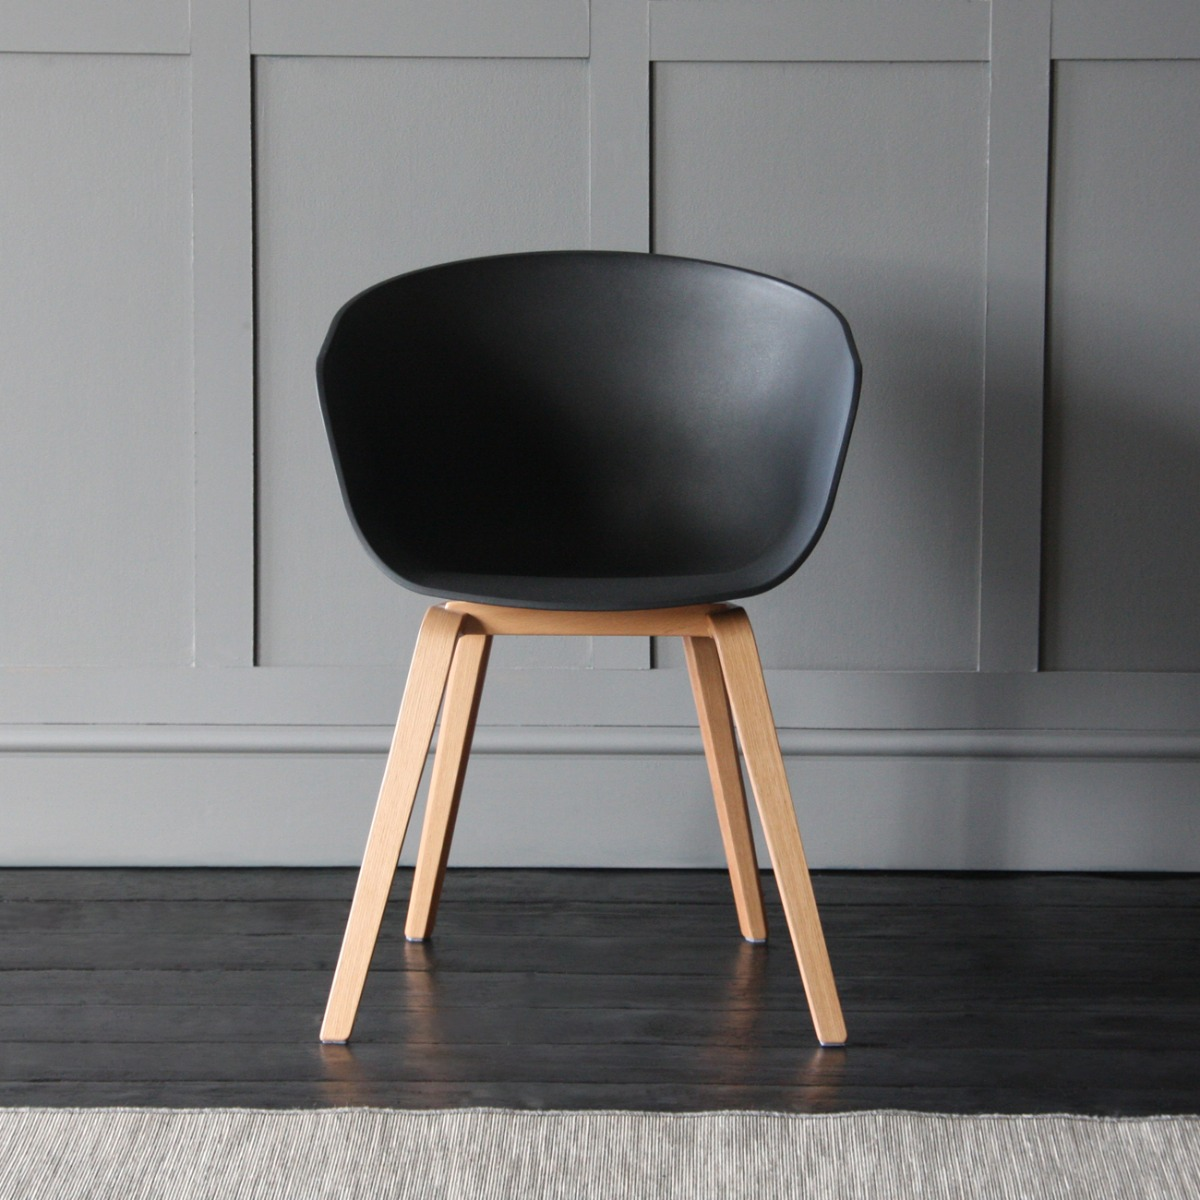 Scandinavian Chair Portobello Scandinavian Nordic Style Tub Dining Chair Black